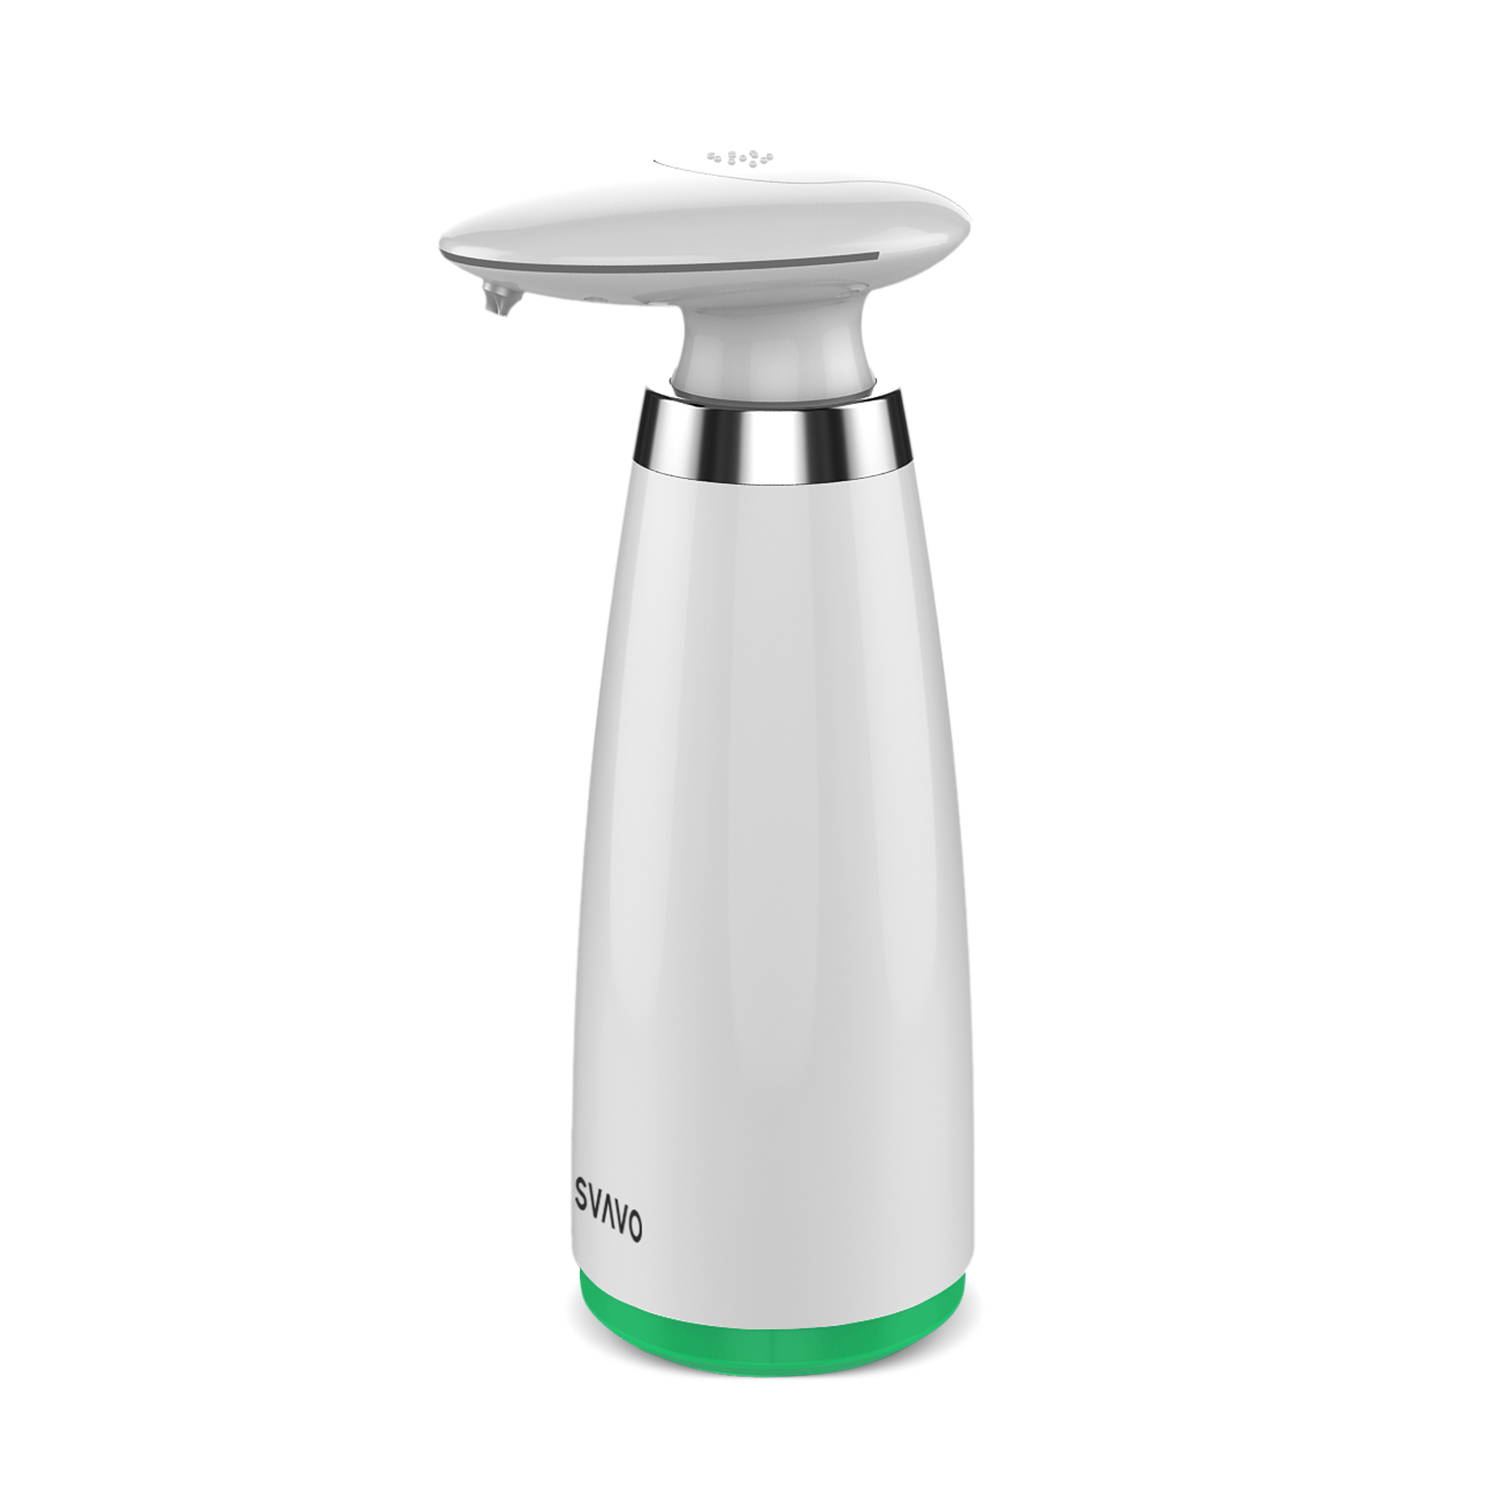 Tabletop Touchless Dish Soap Dispenser V-473